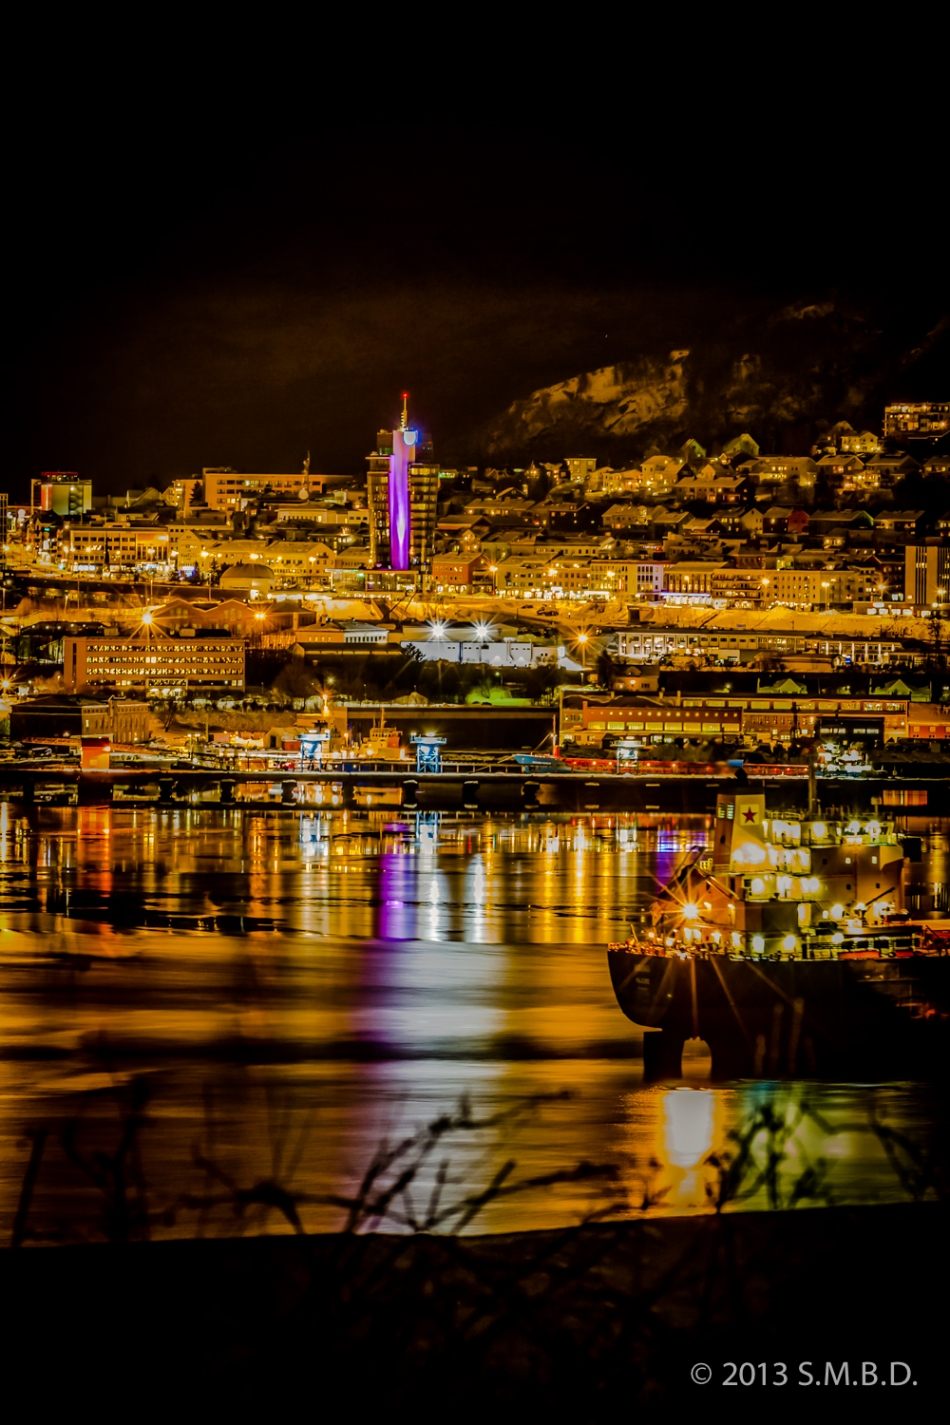 Sleepless in Narvik - The newly installed lightshow on the new hotell downtown reflects in the harbor bassin.